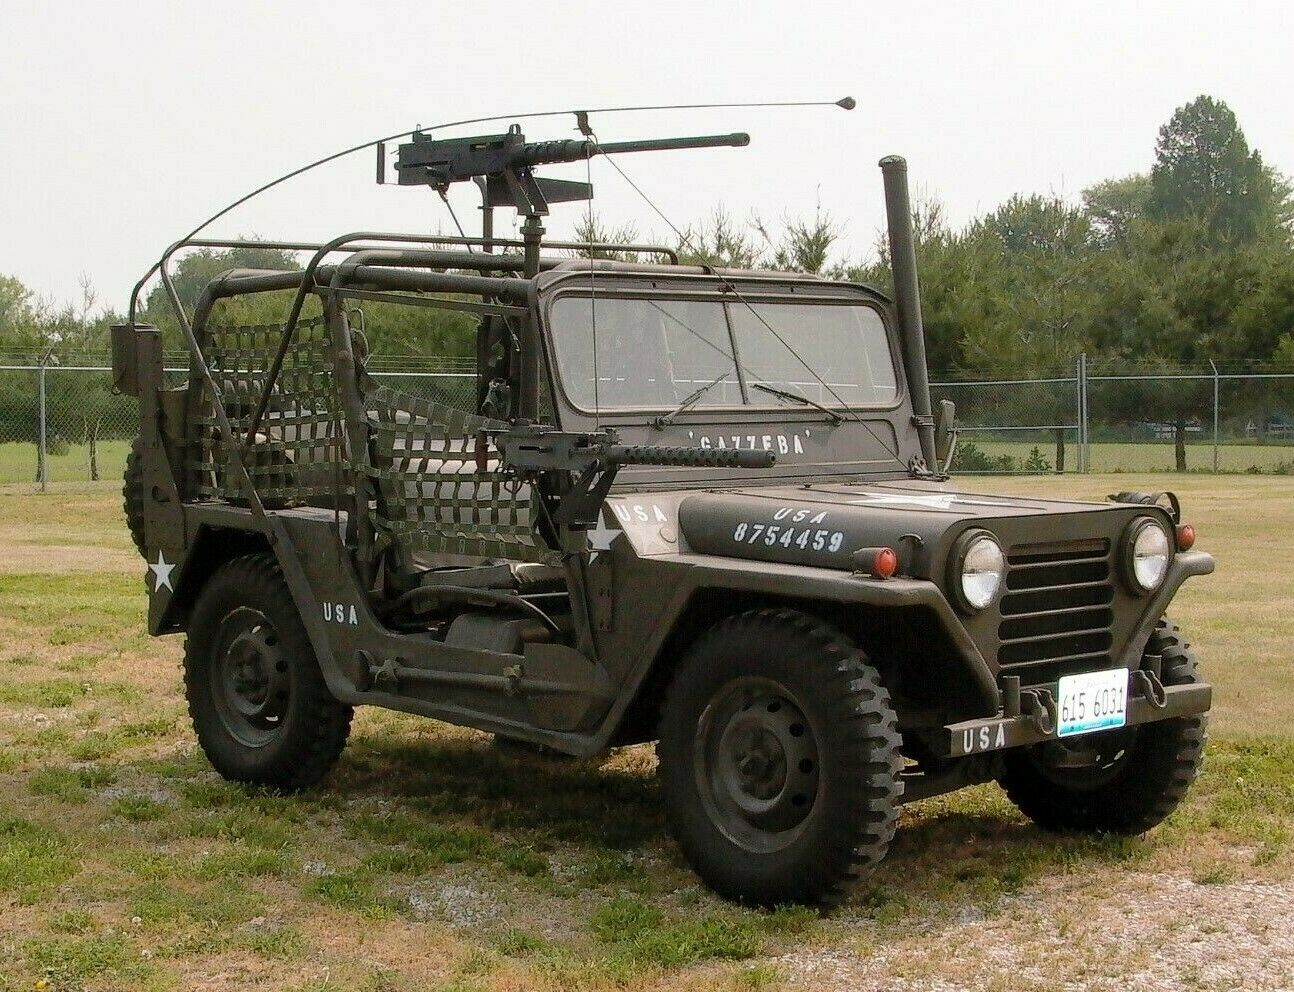 repaired and upgraded 1966 Ford M151 A1/a2 Vietnam Era Jeep military for sale